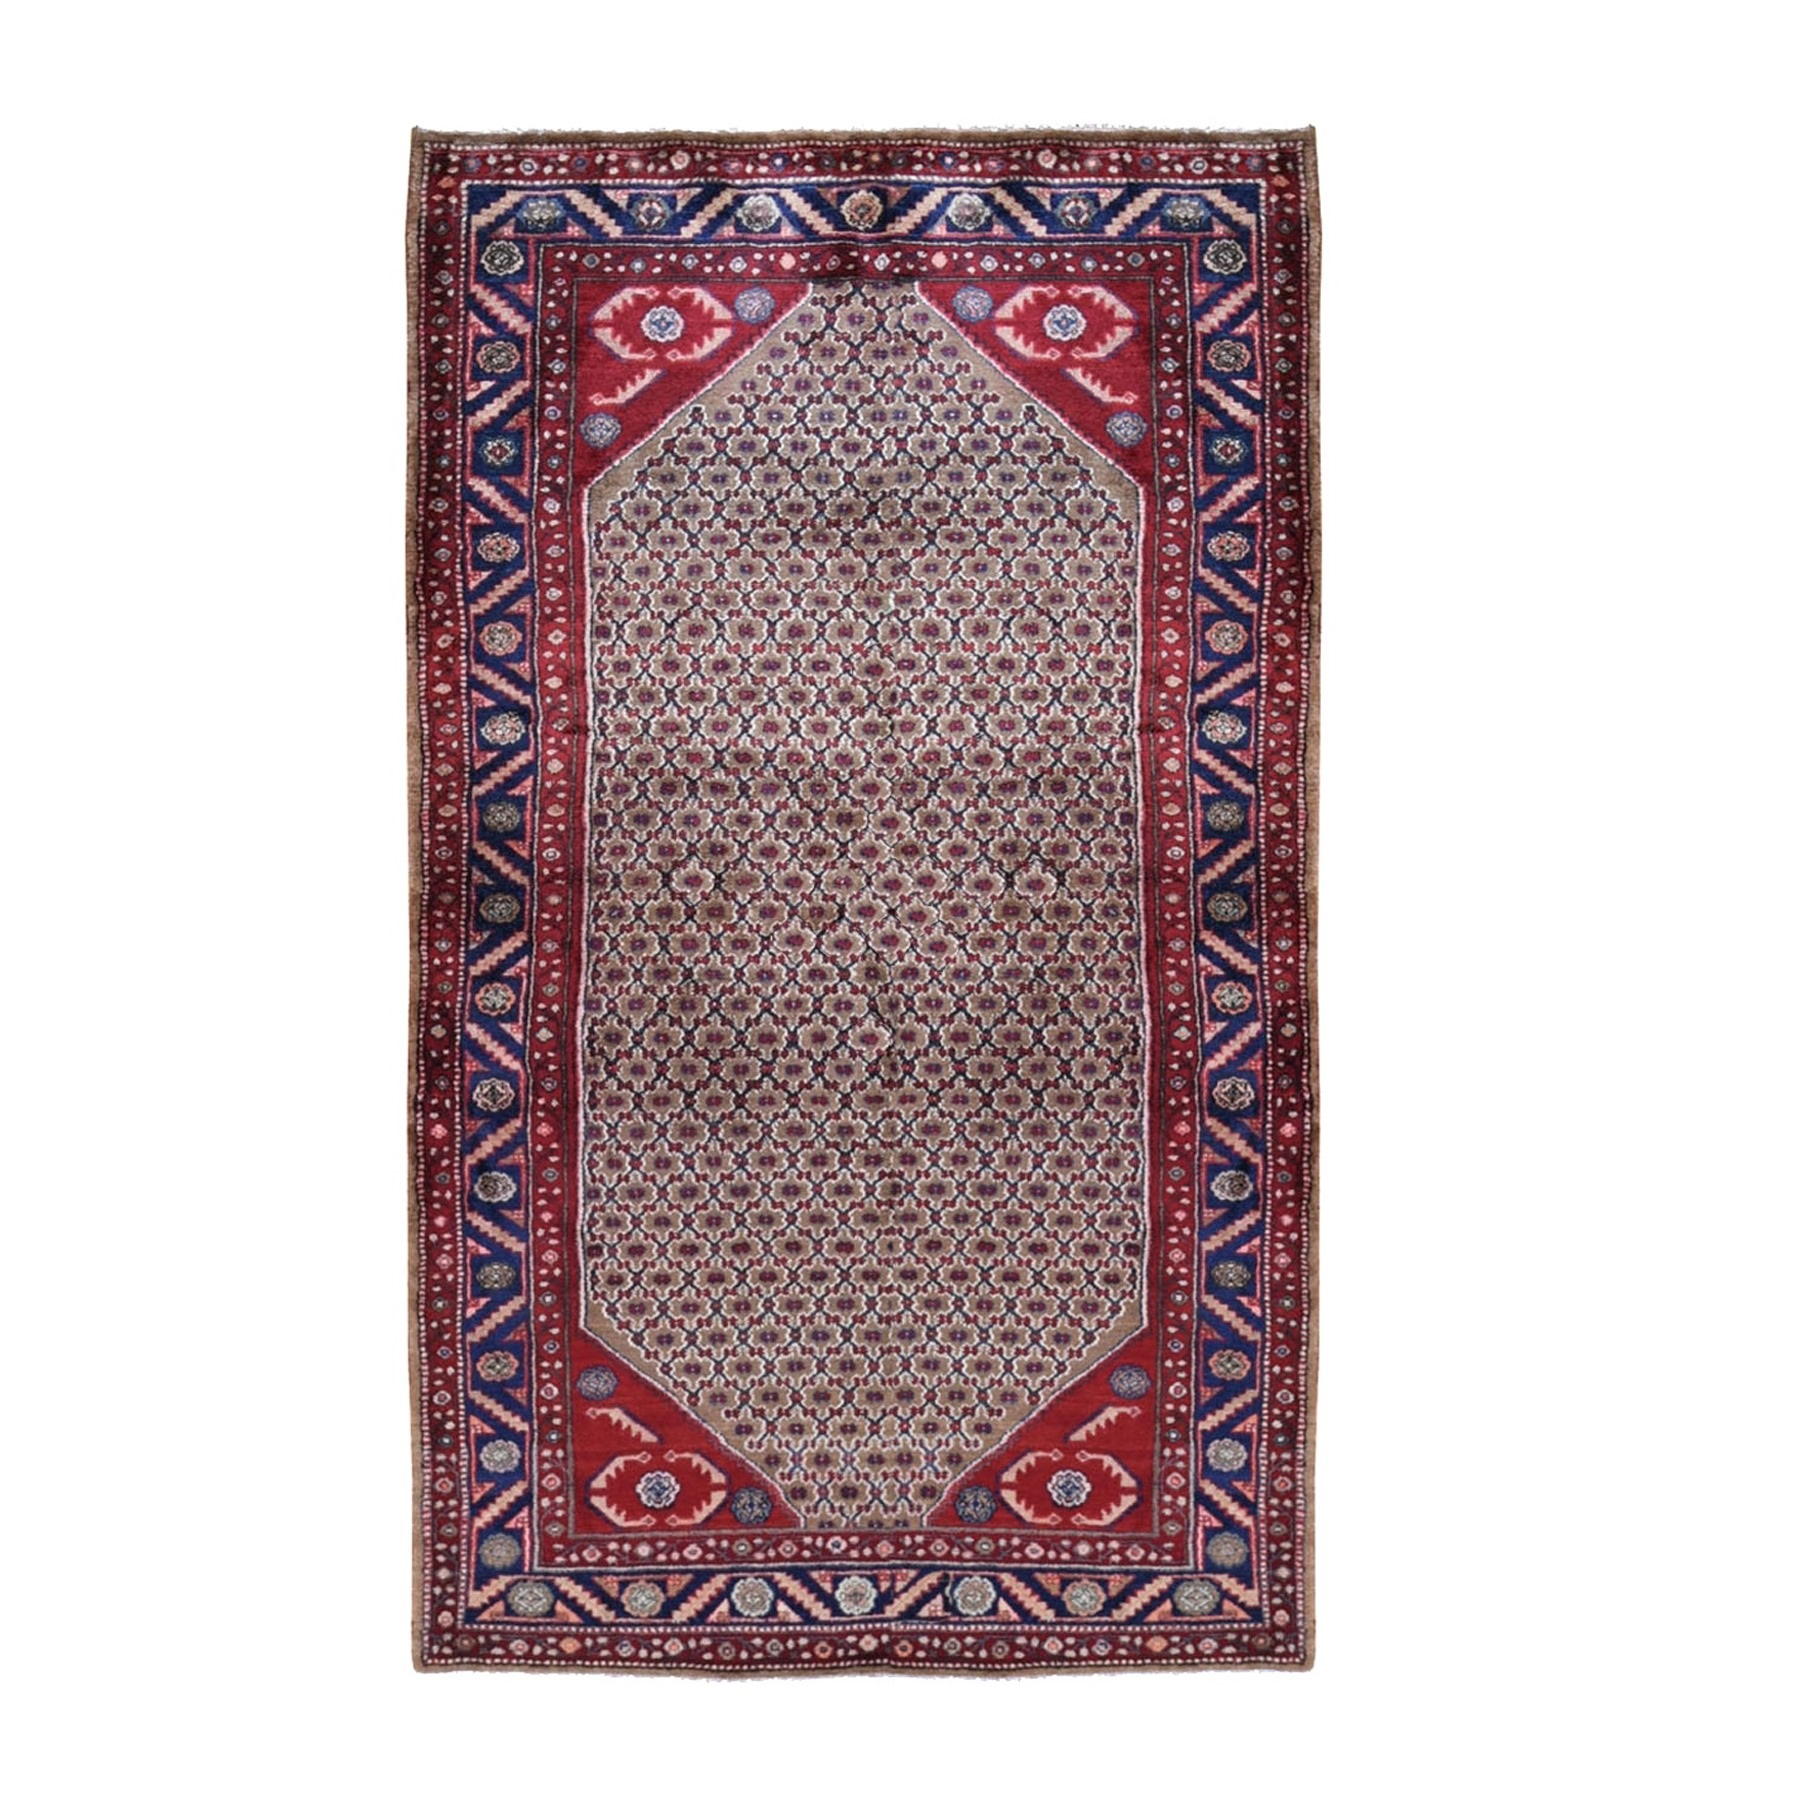 "5'X9'6"" Gallery Size Mocha New Persian Serab Camel Hair Full Pile Pure Wool Hand Knotted Oriental Rug moad9799"